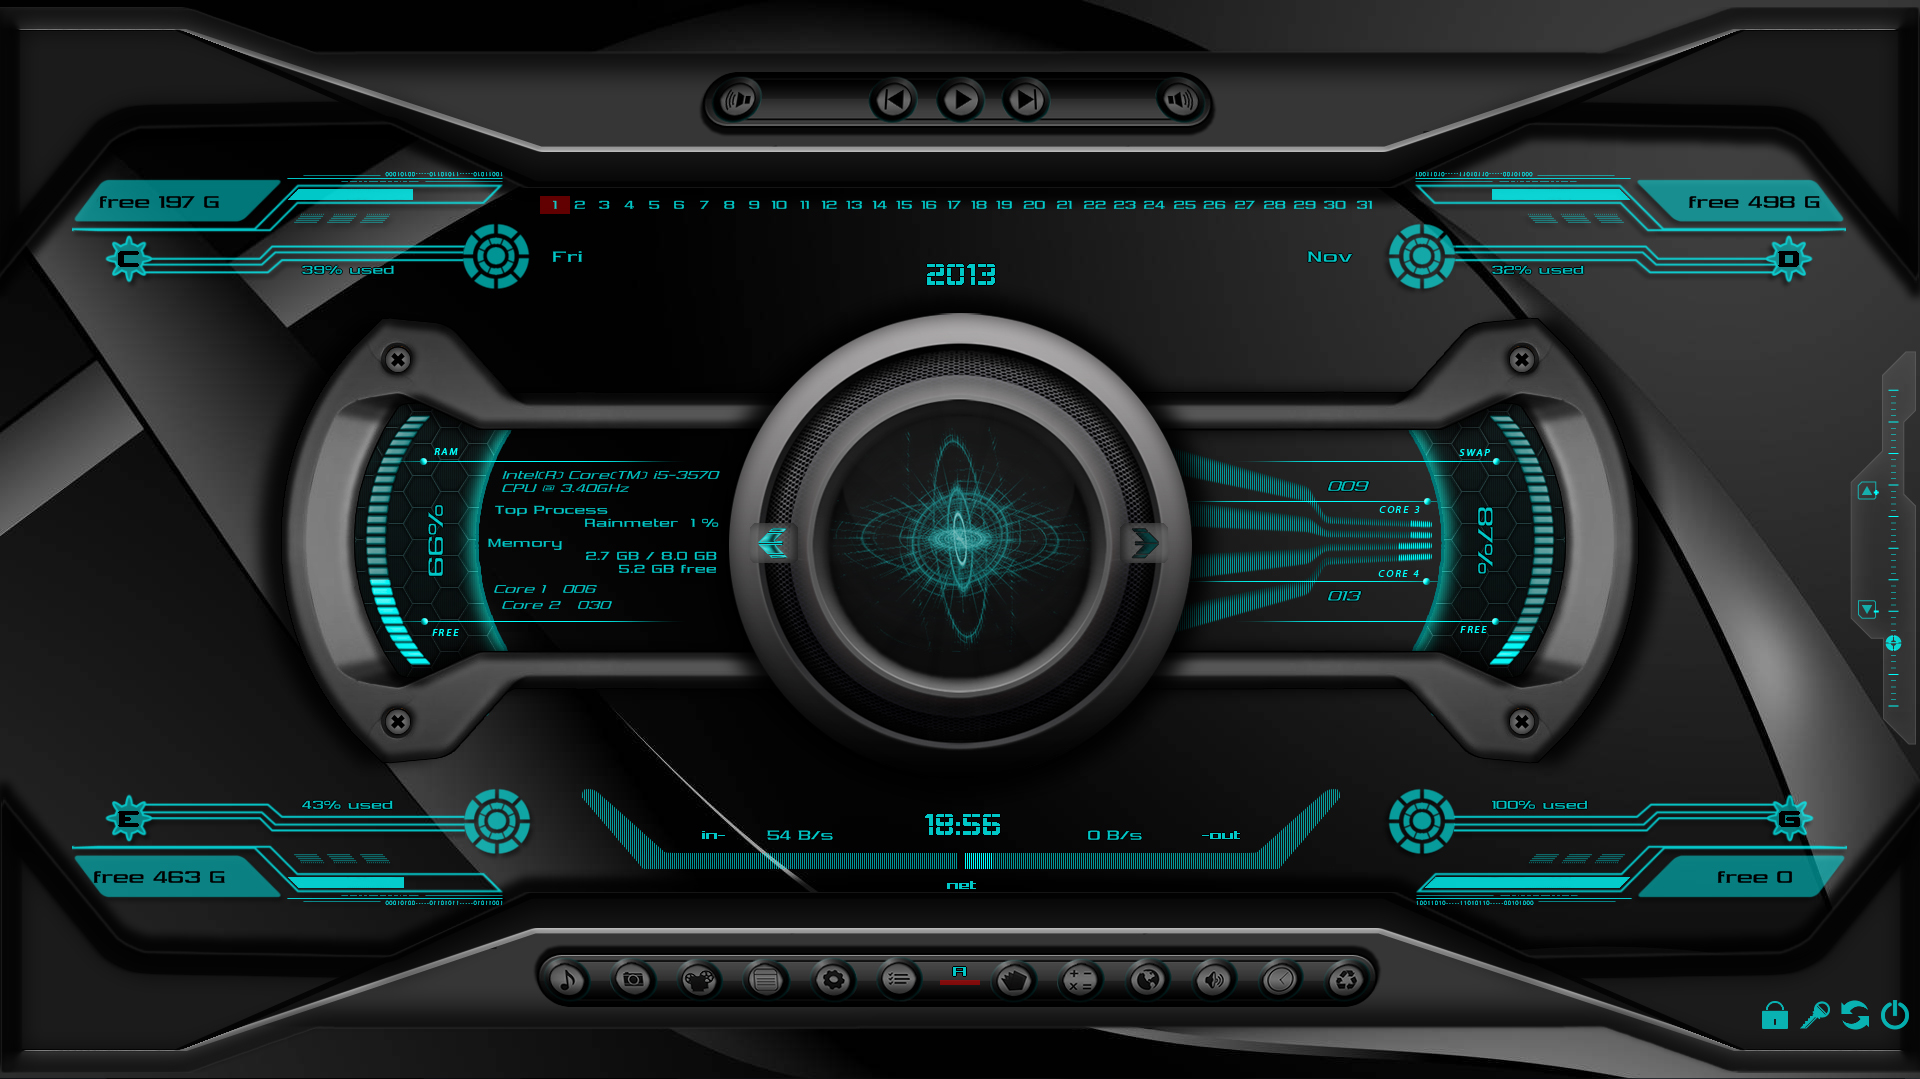 Animated 3d wallpaper jarvis interface - T R A N F O R M E X Mod 1366x768 1920x1080 By Zakycool Shield Jarvis Ui